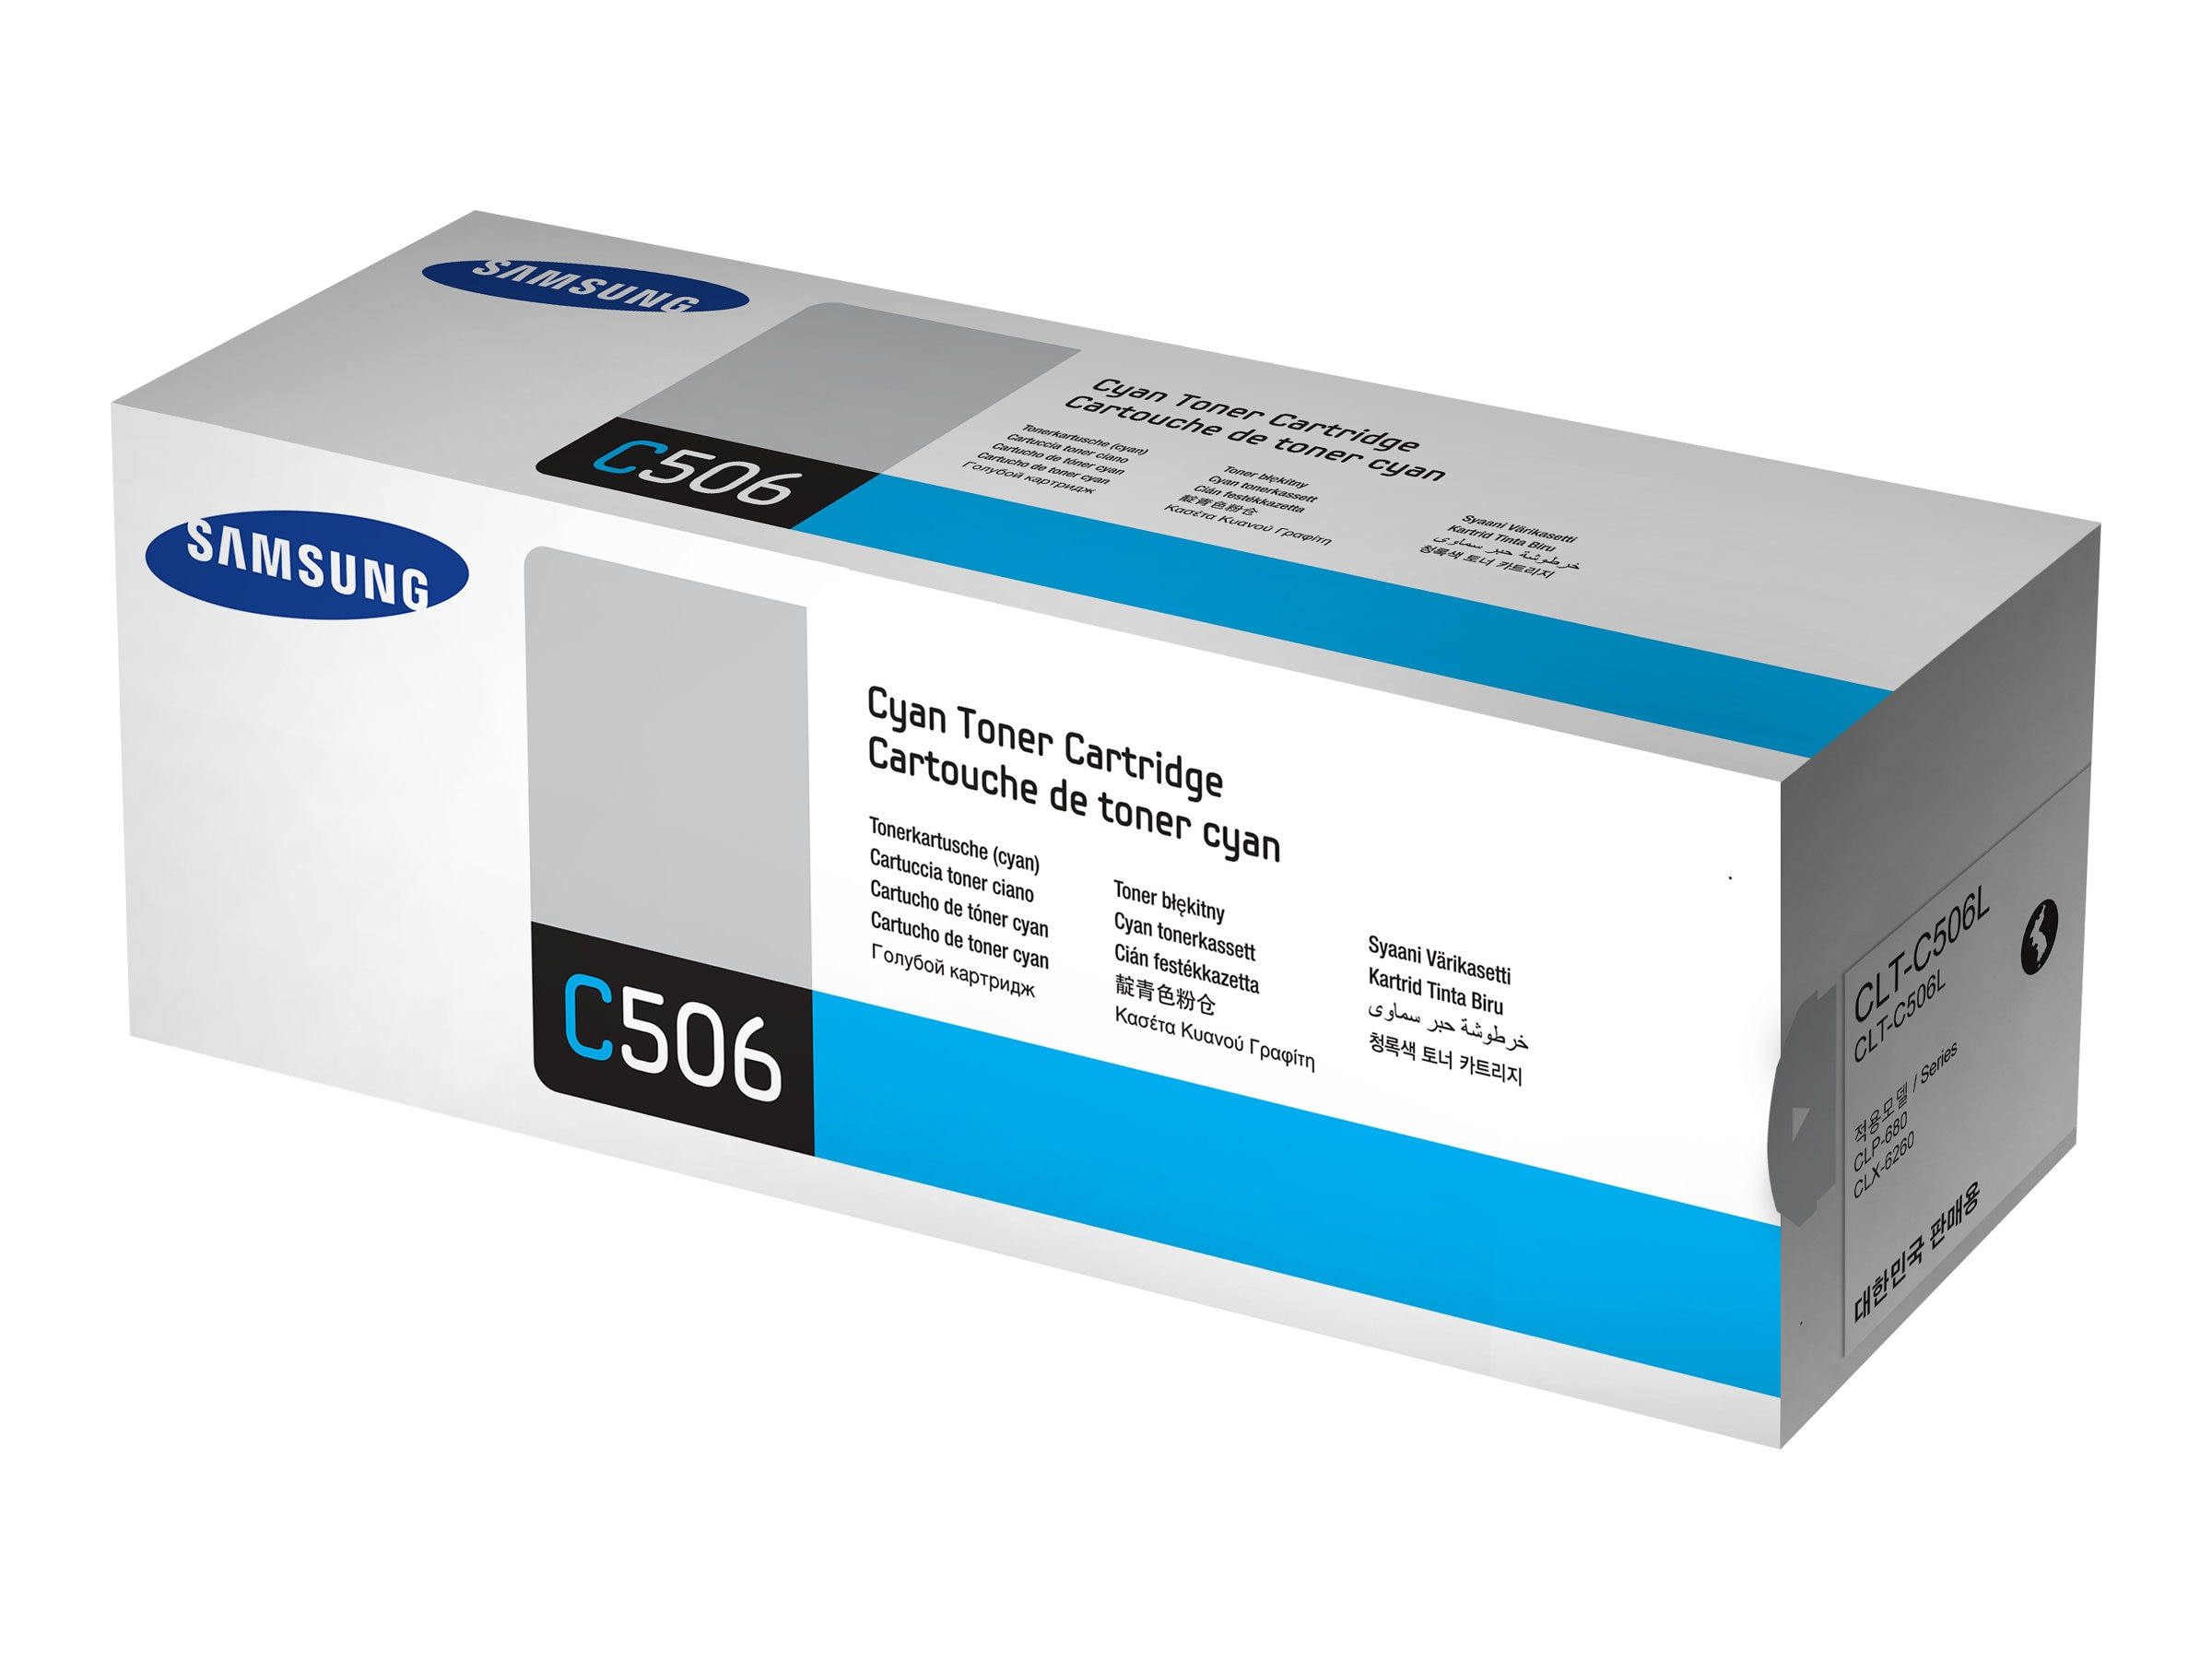 Samsung Cyan High Yield Toner Cartridge for CLX-6260FD & CLX-6260FW Color MFPs & CLP-680ND Color Printer